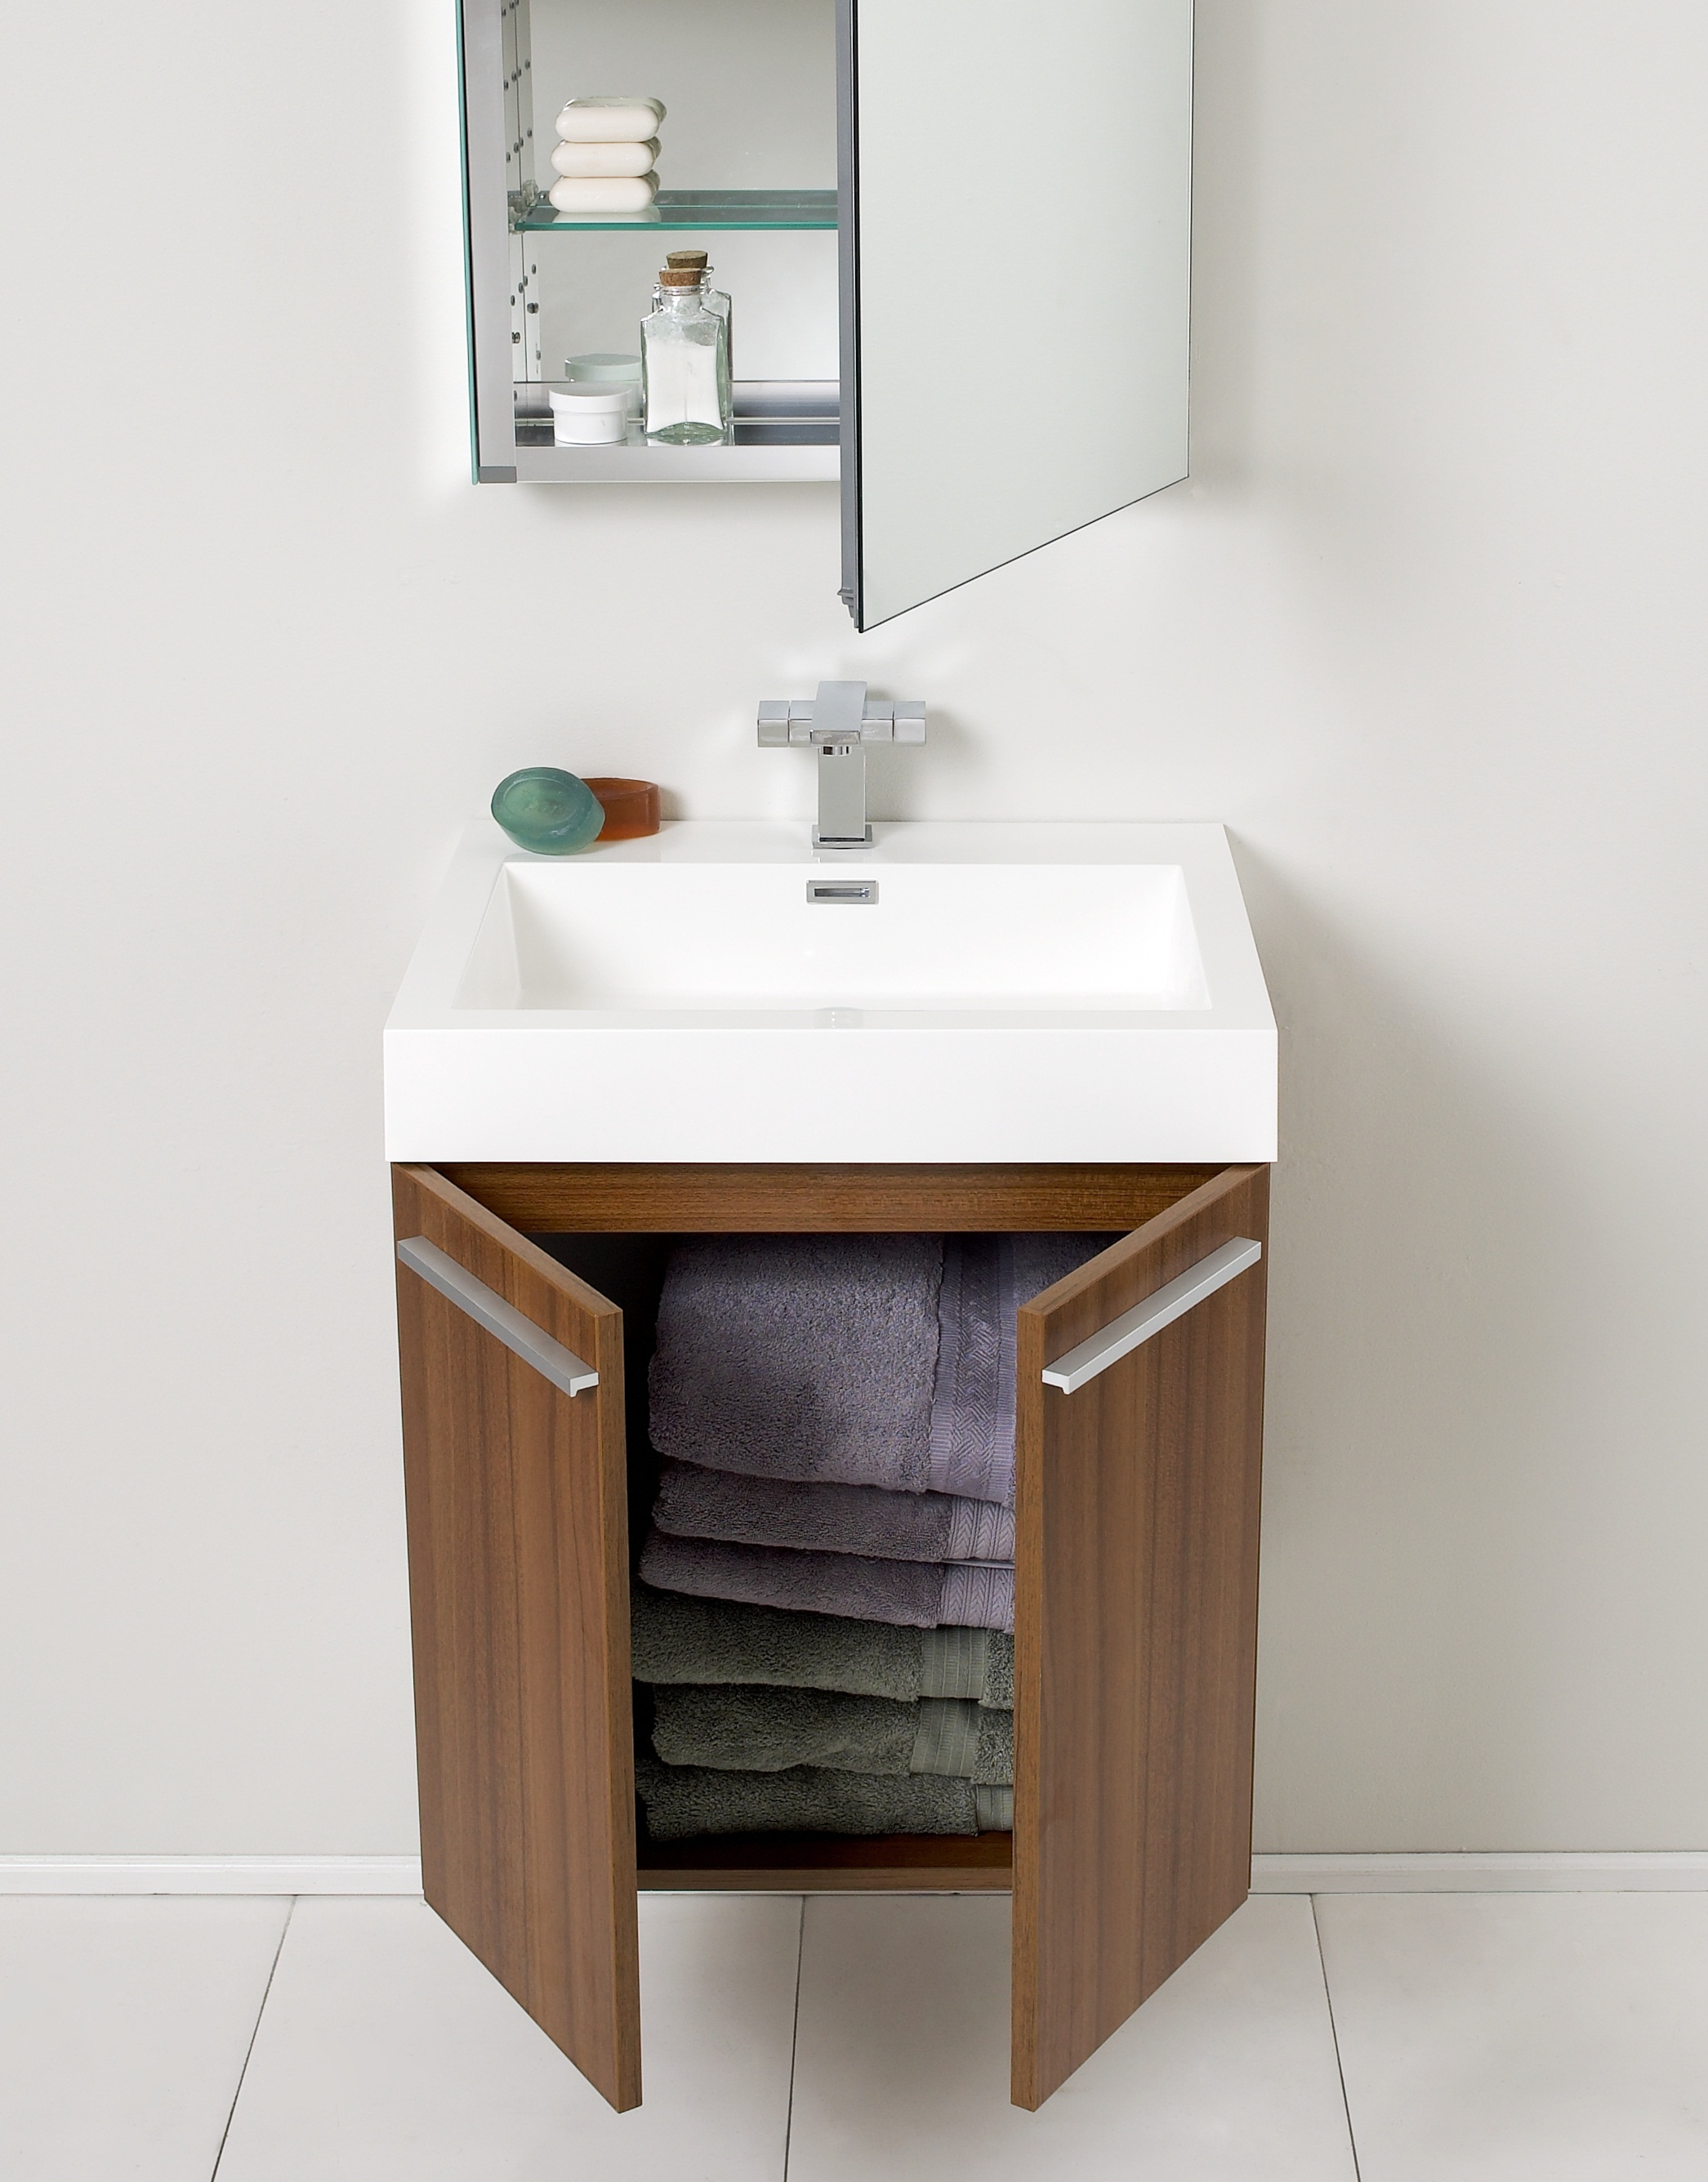 small bathroom vanities for layouts lacking space eva ForBathroom Cabinets Small Spaces